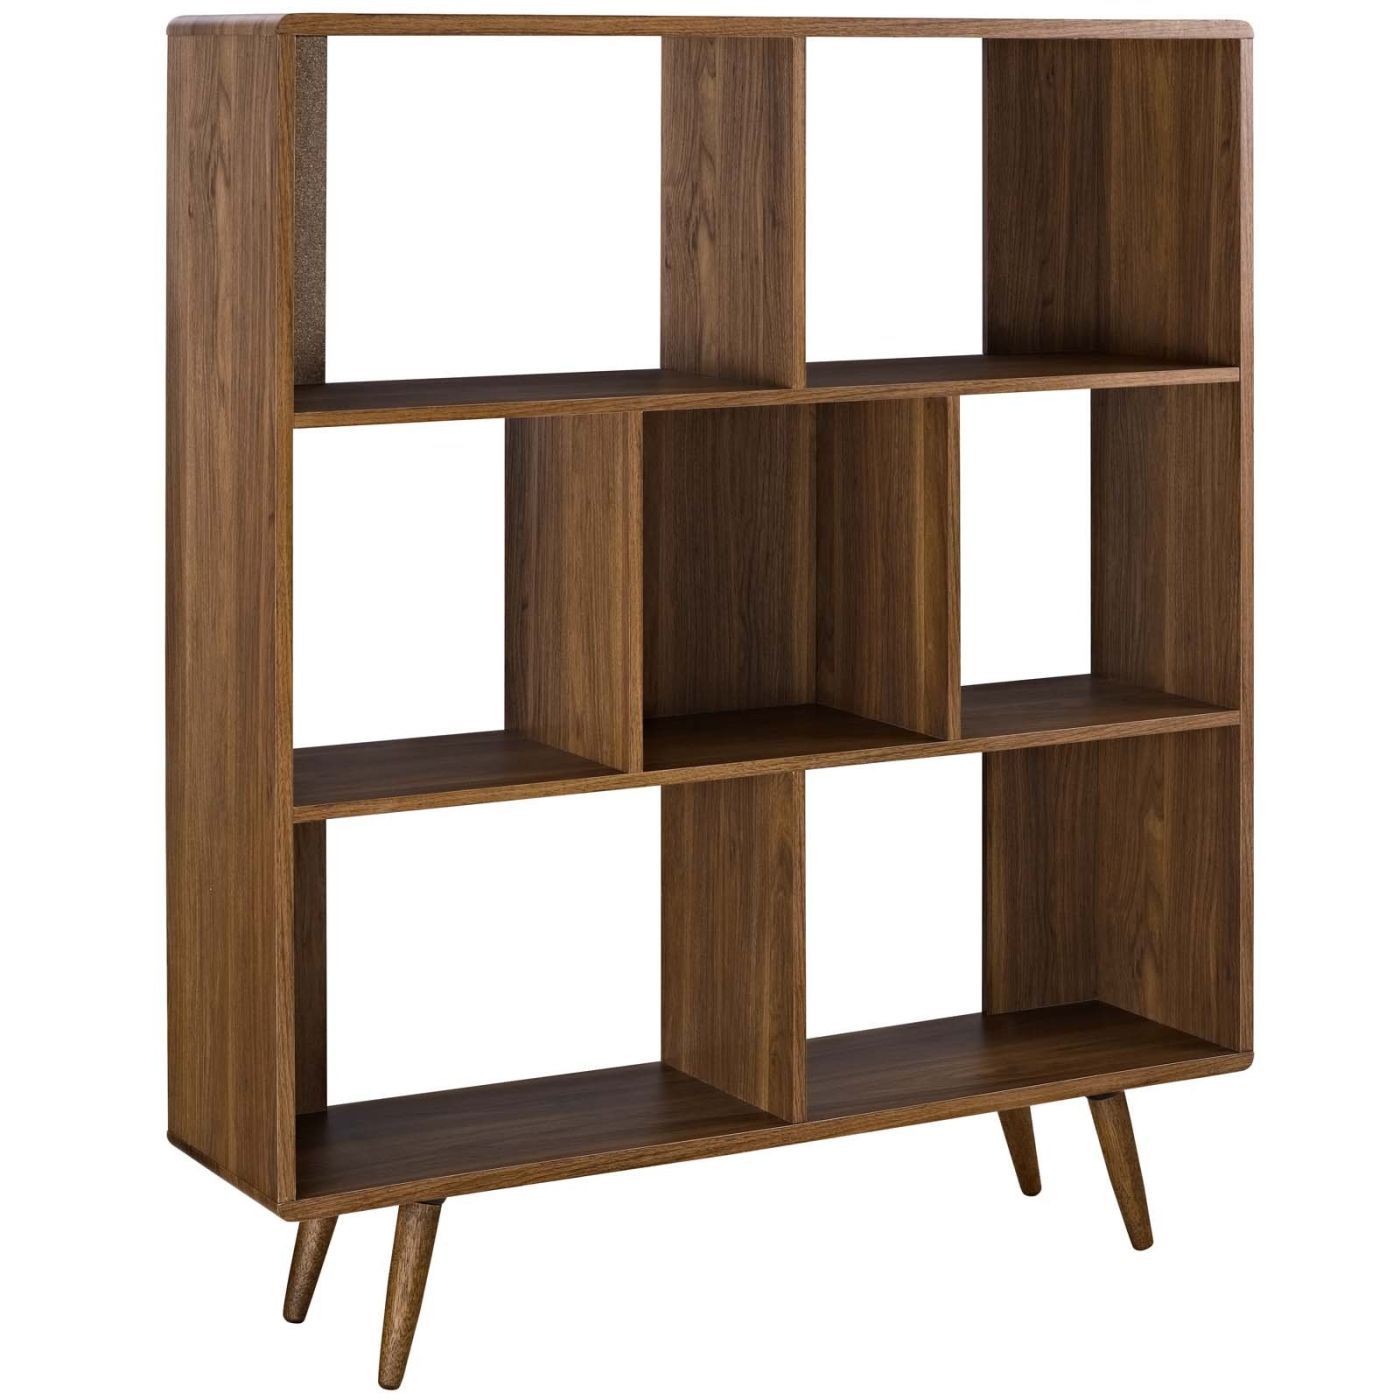 Merveilleux Realm Contemporary Three Tiered Bookcase Smooth Walnut Bokcase ...